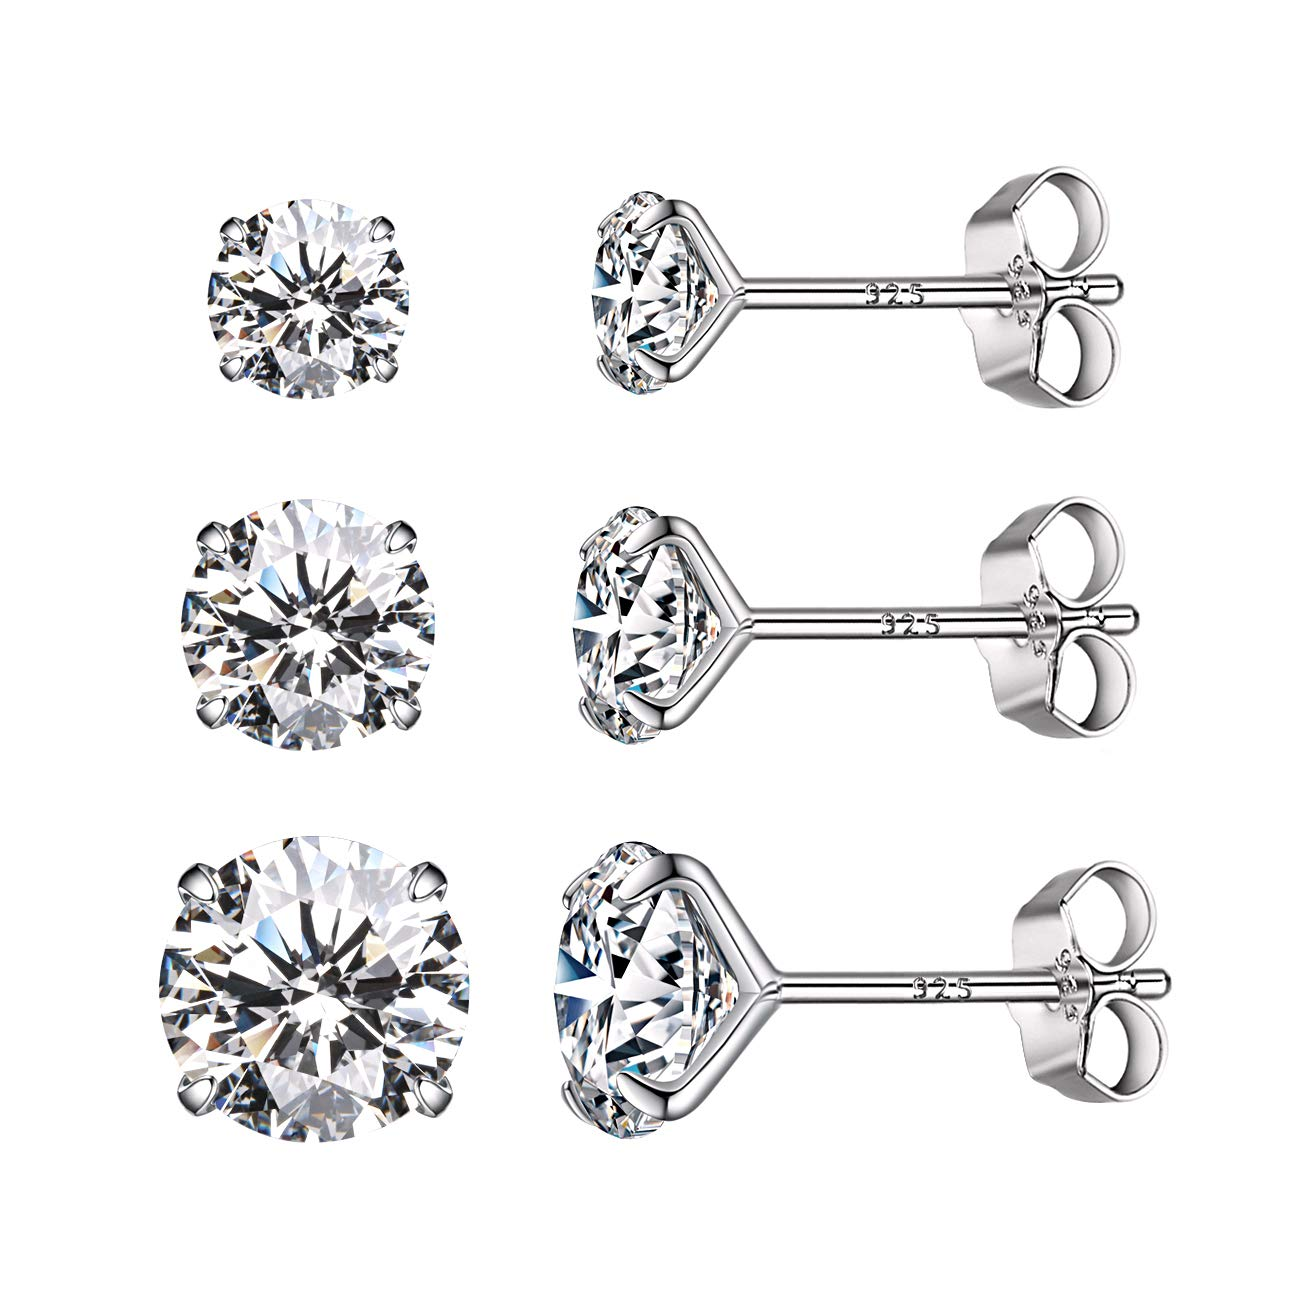 CZ Stud Earrings 925 Sterling Silver 18K Gold Plated Round Cubic Zirconia Hypoallergenic Set (S4-6)